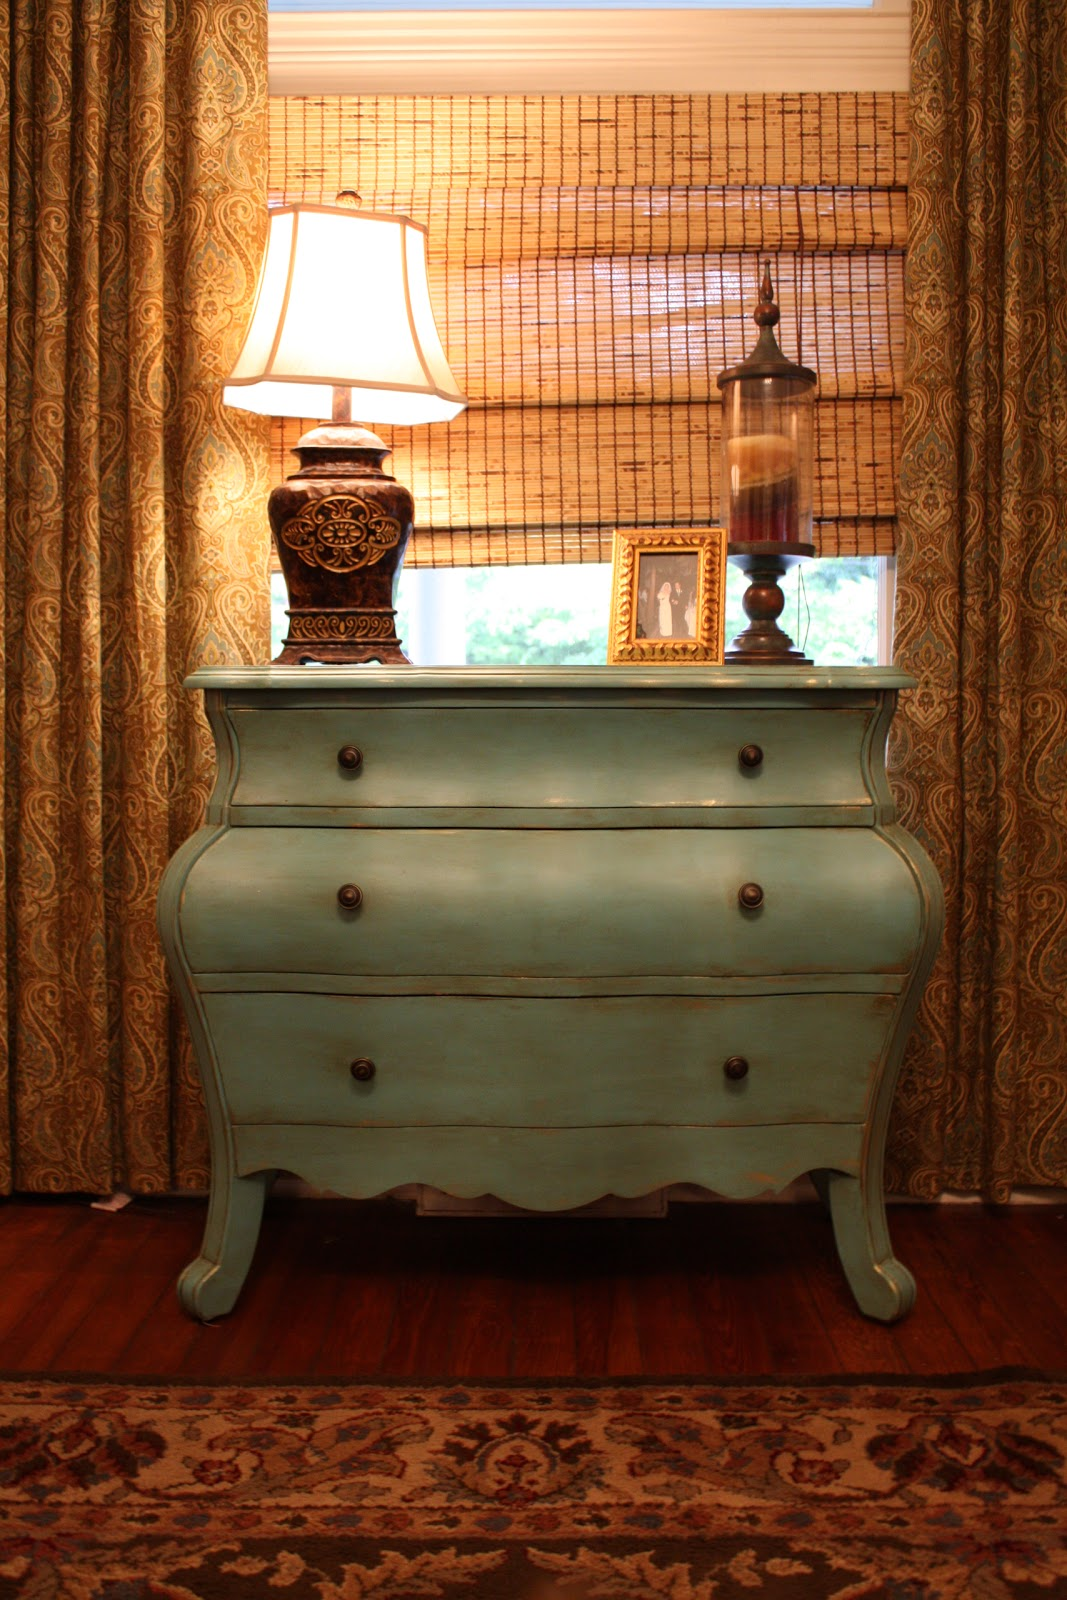 A Few Years Ago We Purchase A Distressed Red Painted Chest For Our Home In  Alabama. I Loved The Curves Of The Chest But Thought The Color Was Too Dark  For ...